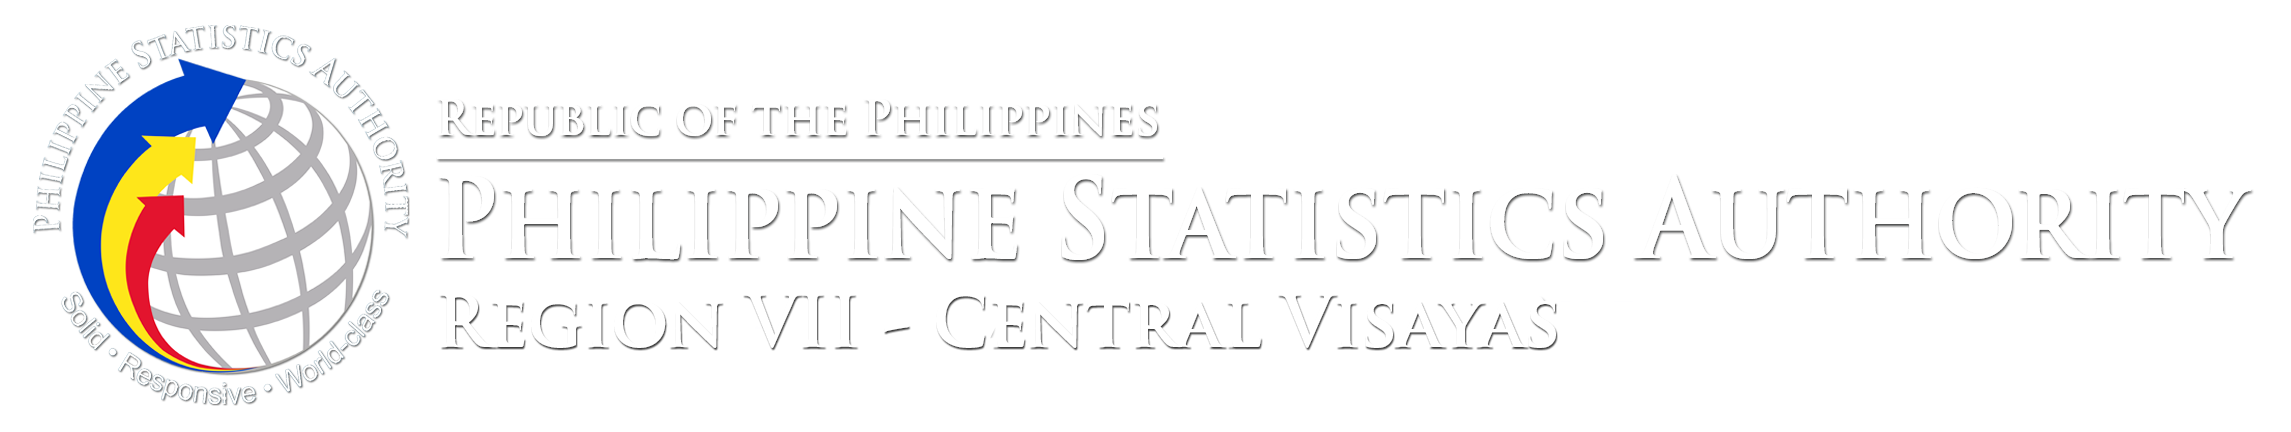 PSA Central Visayas Website